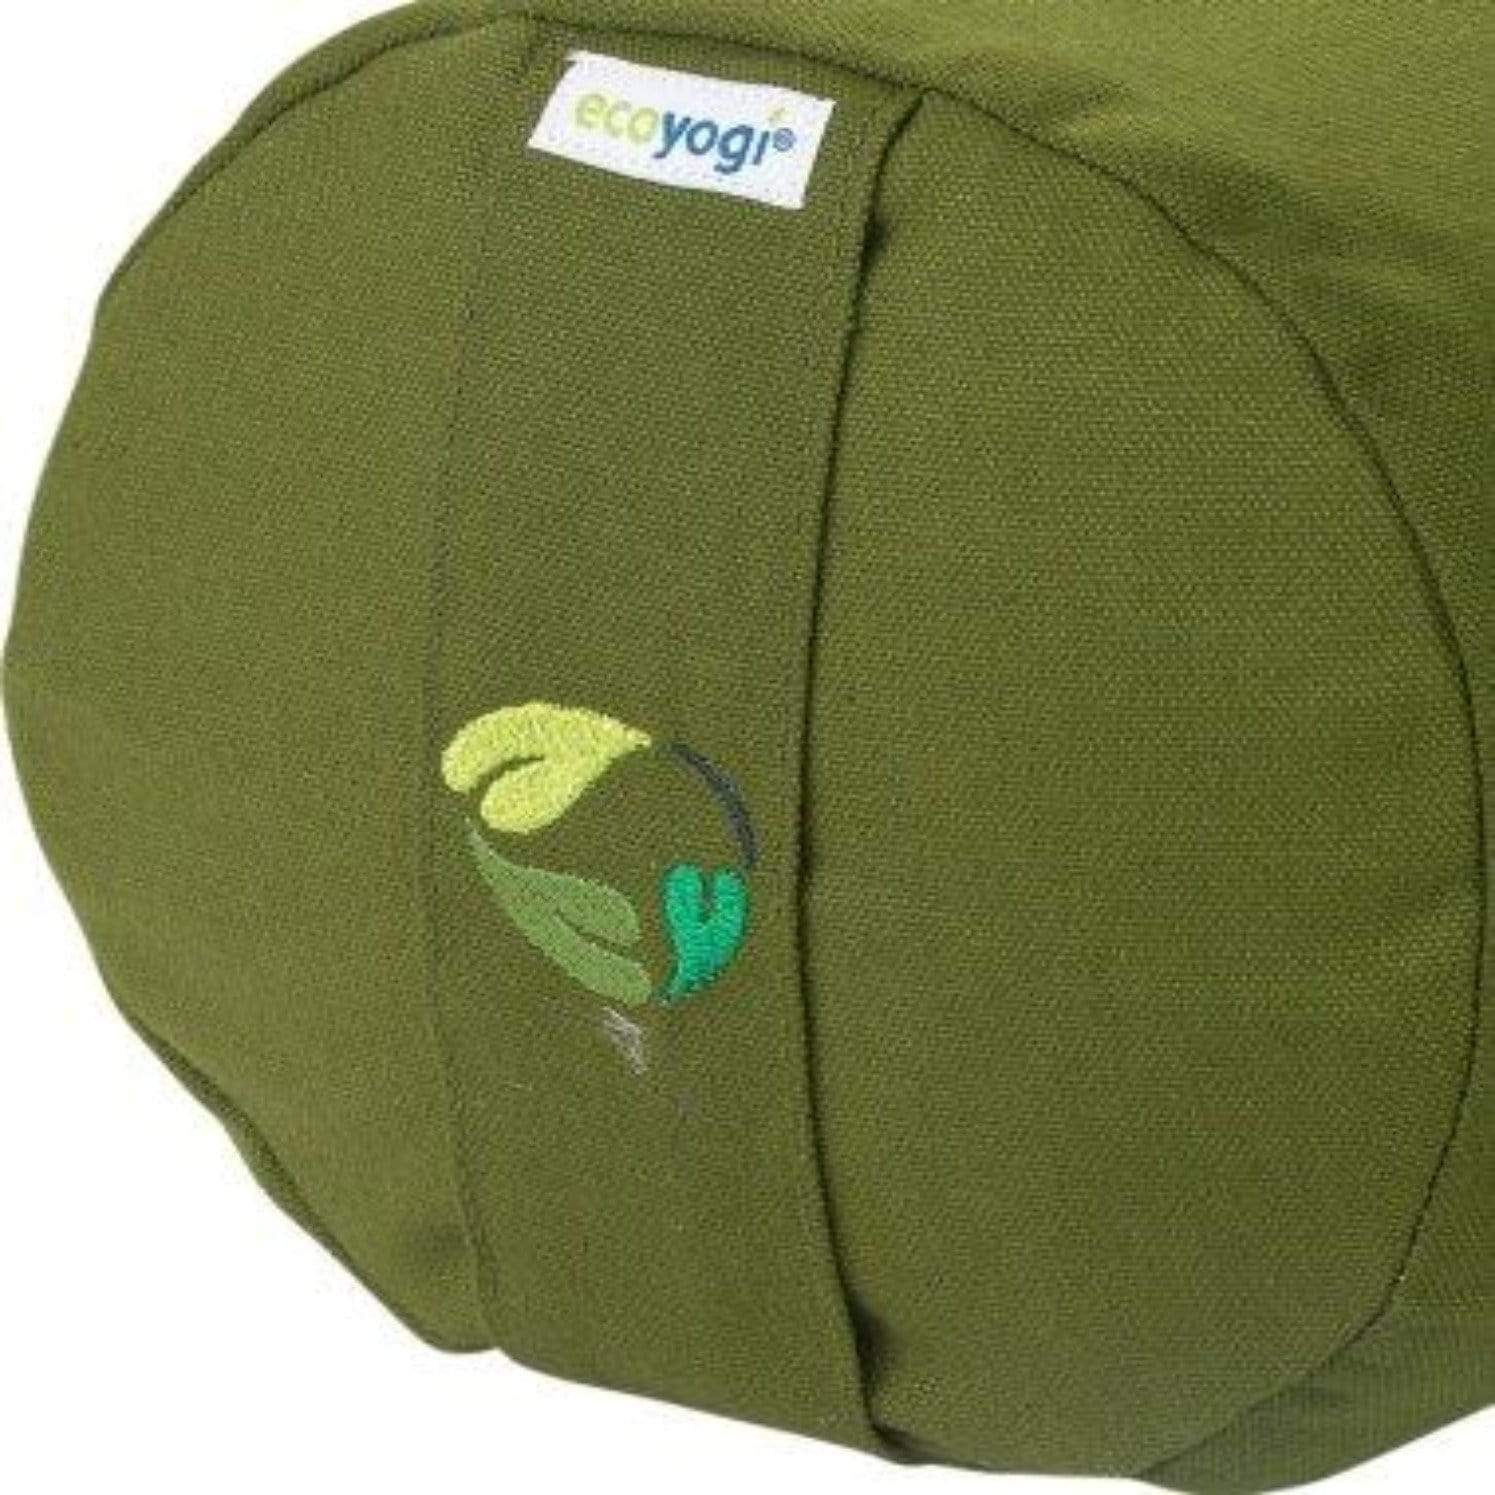 sustainable gifts Ecoyogi Olive green Organic cotton yoga bolster - olive green